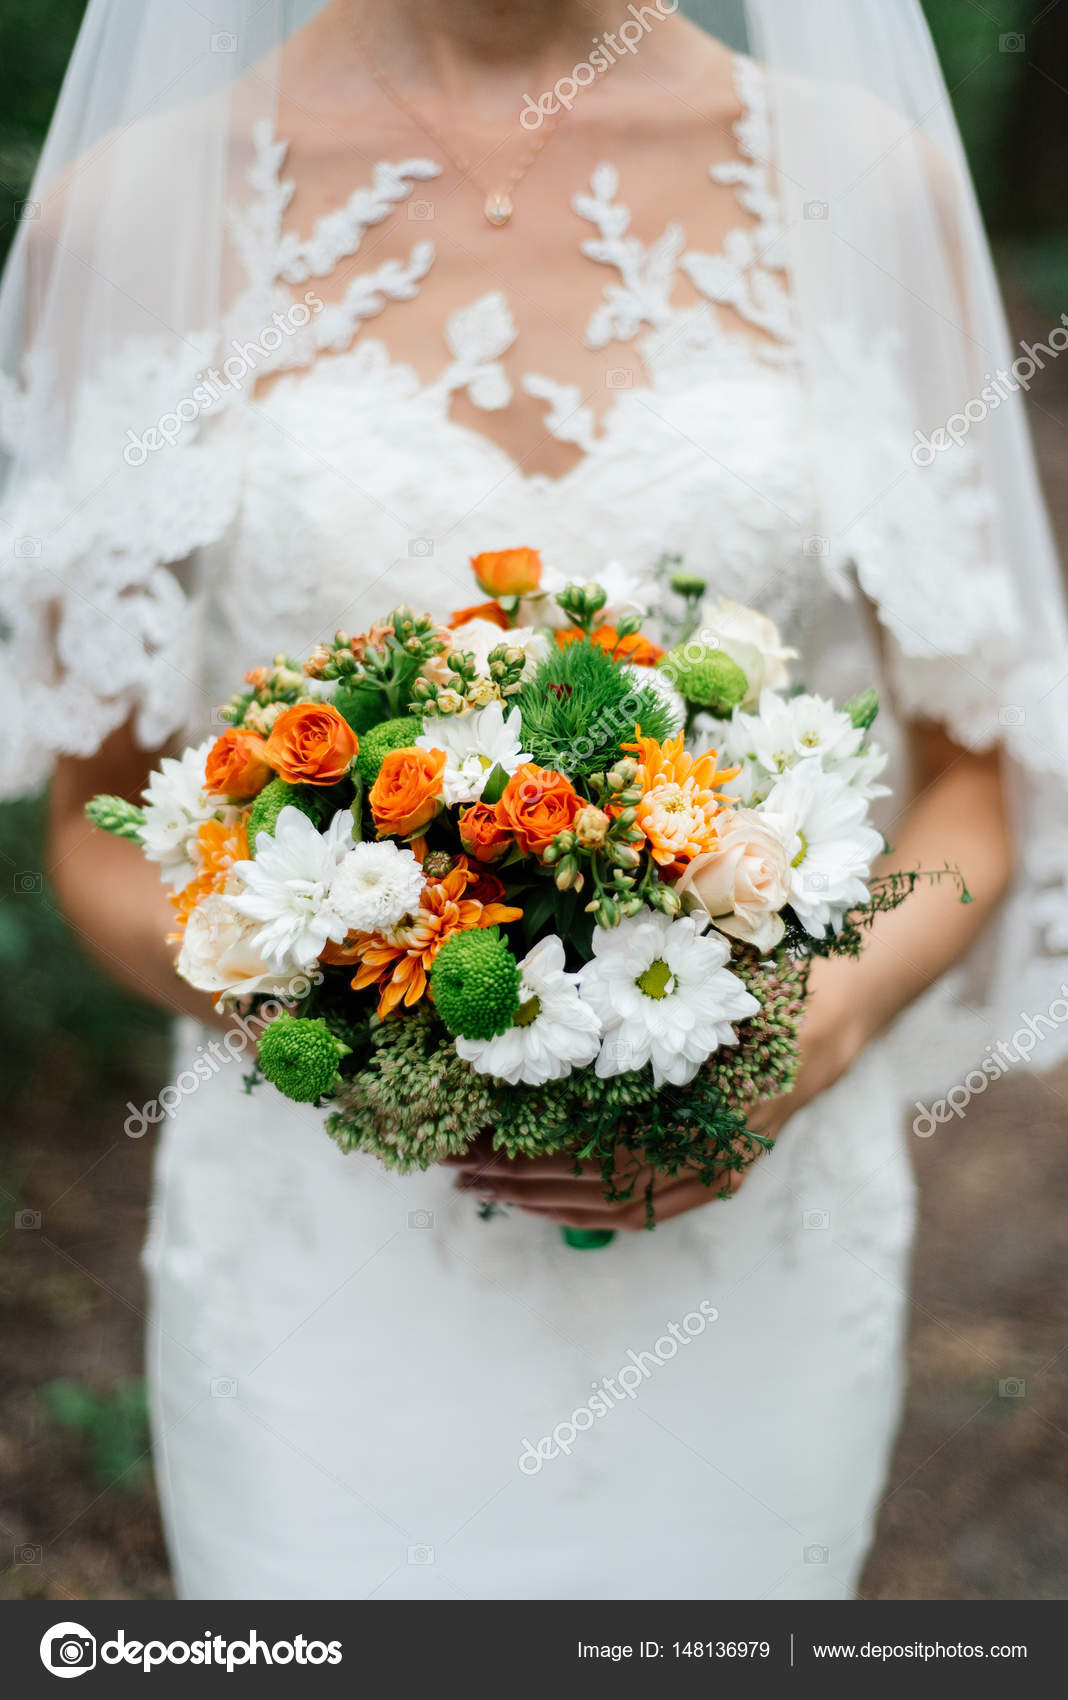 Brautstrauss Orange Rosen Chrysanthemen Weiss Und Orange Und Grun In